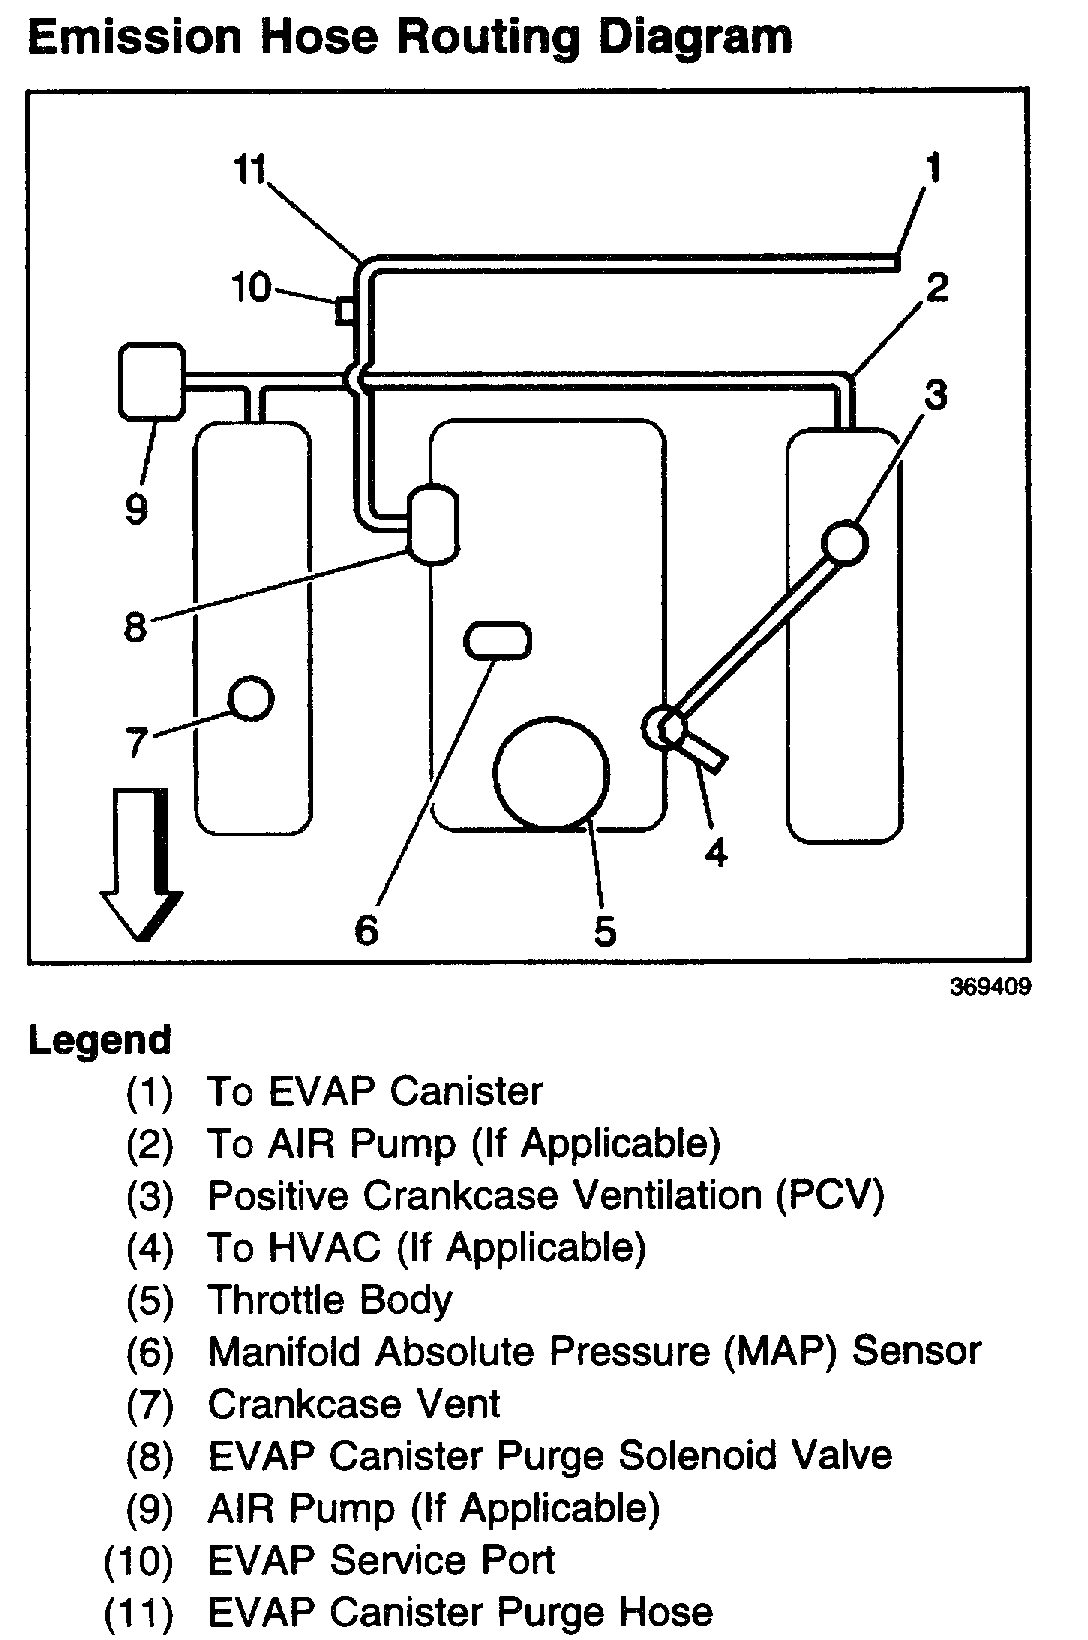 Need A Vacuum Hose Routing Diagram For A Chevy S10 4 3l Vortec Engine